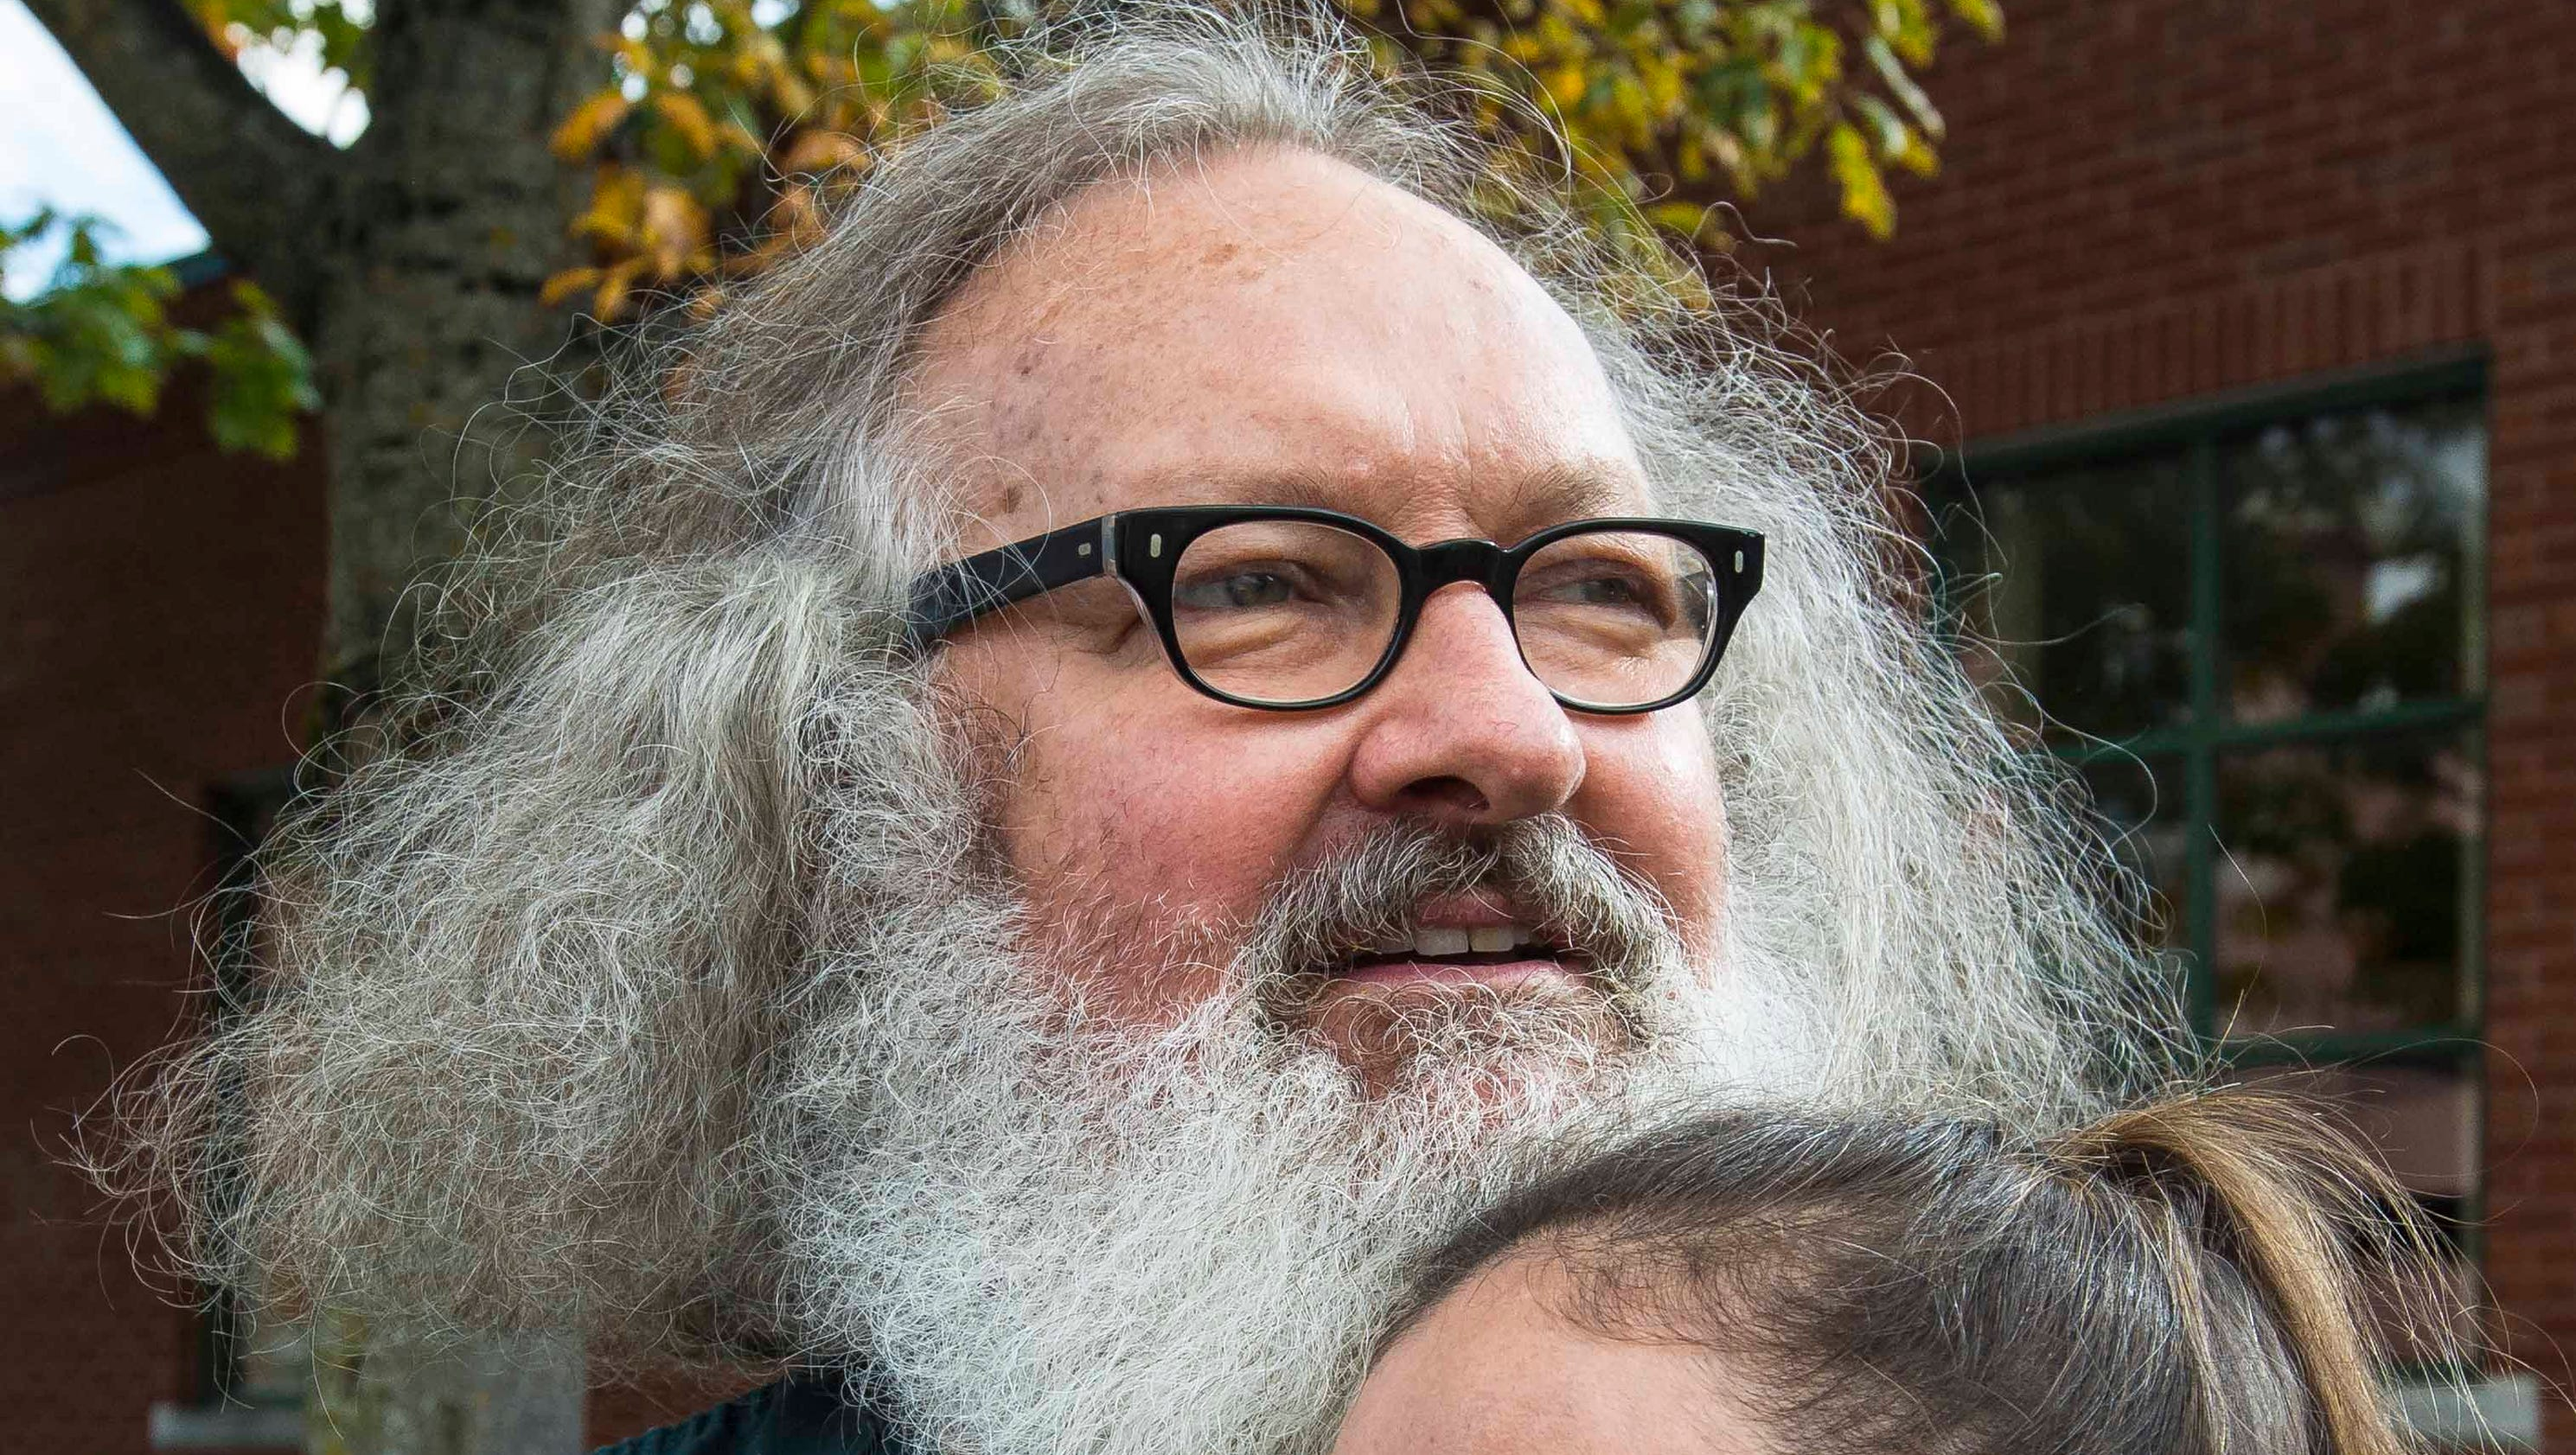 randy quaid - photo #22